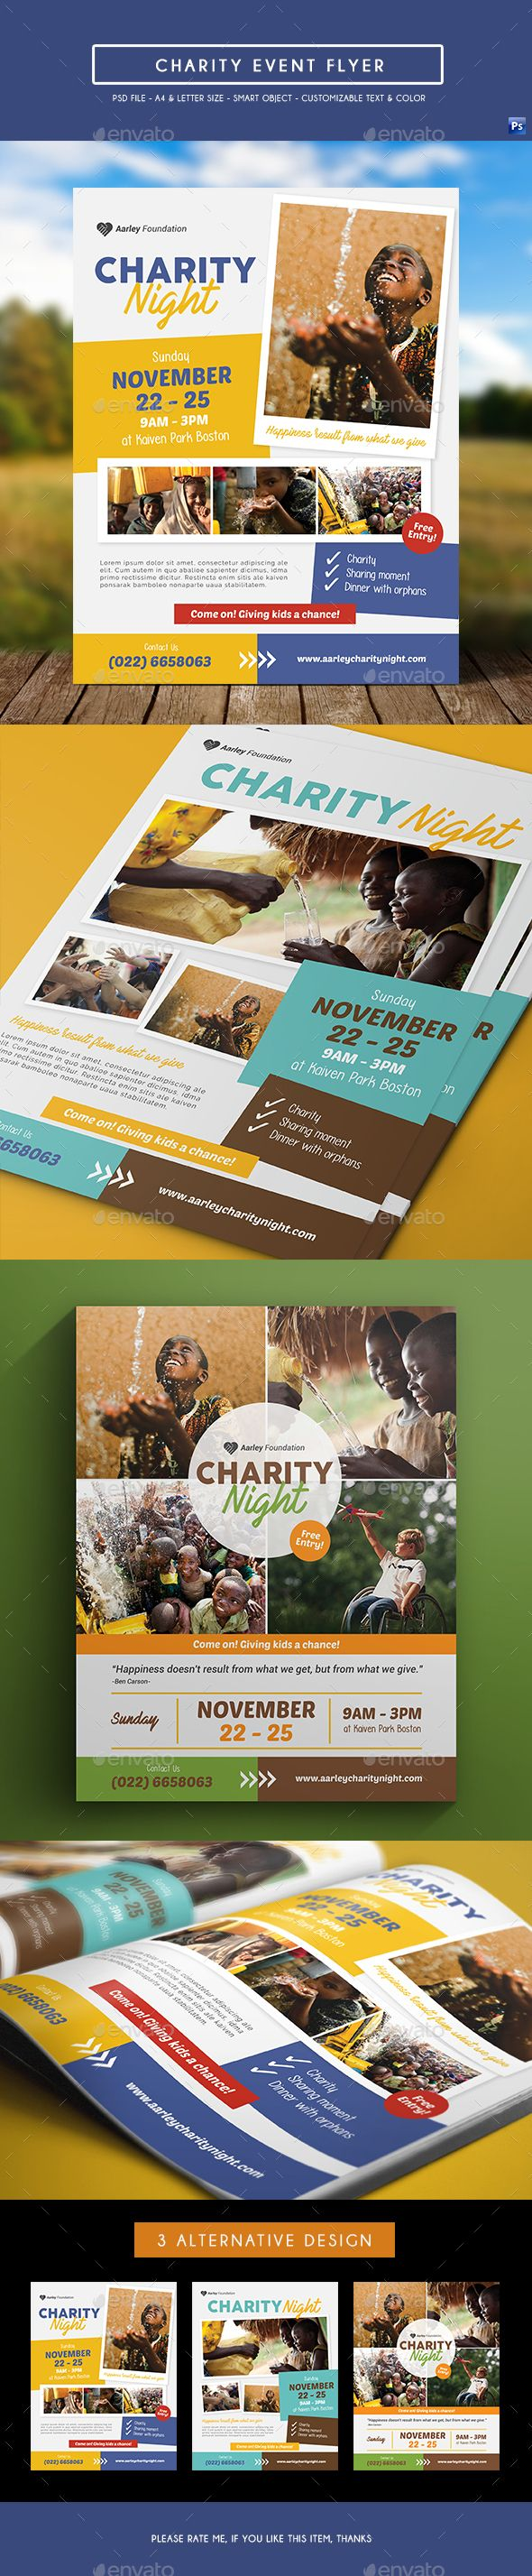 Non-Profit – Charity Poster free PSD Template free download